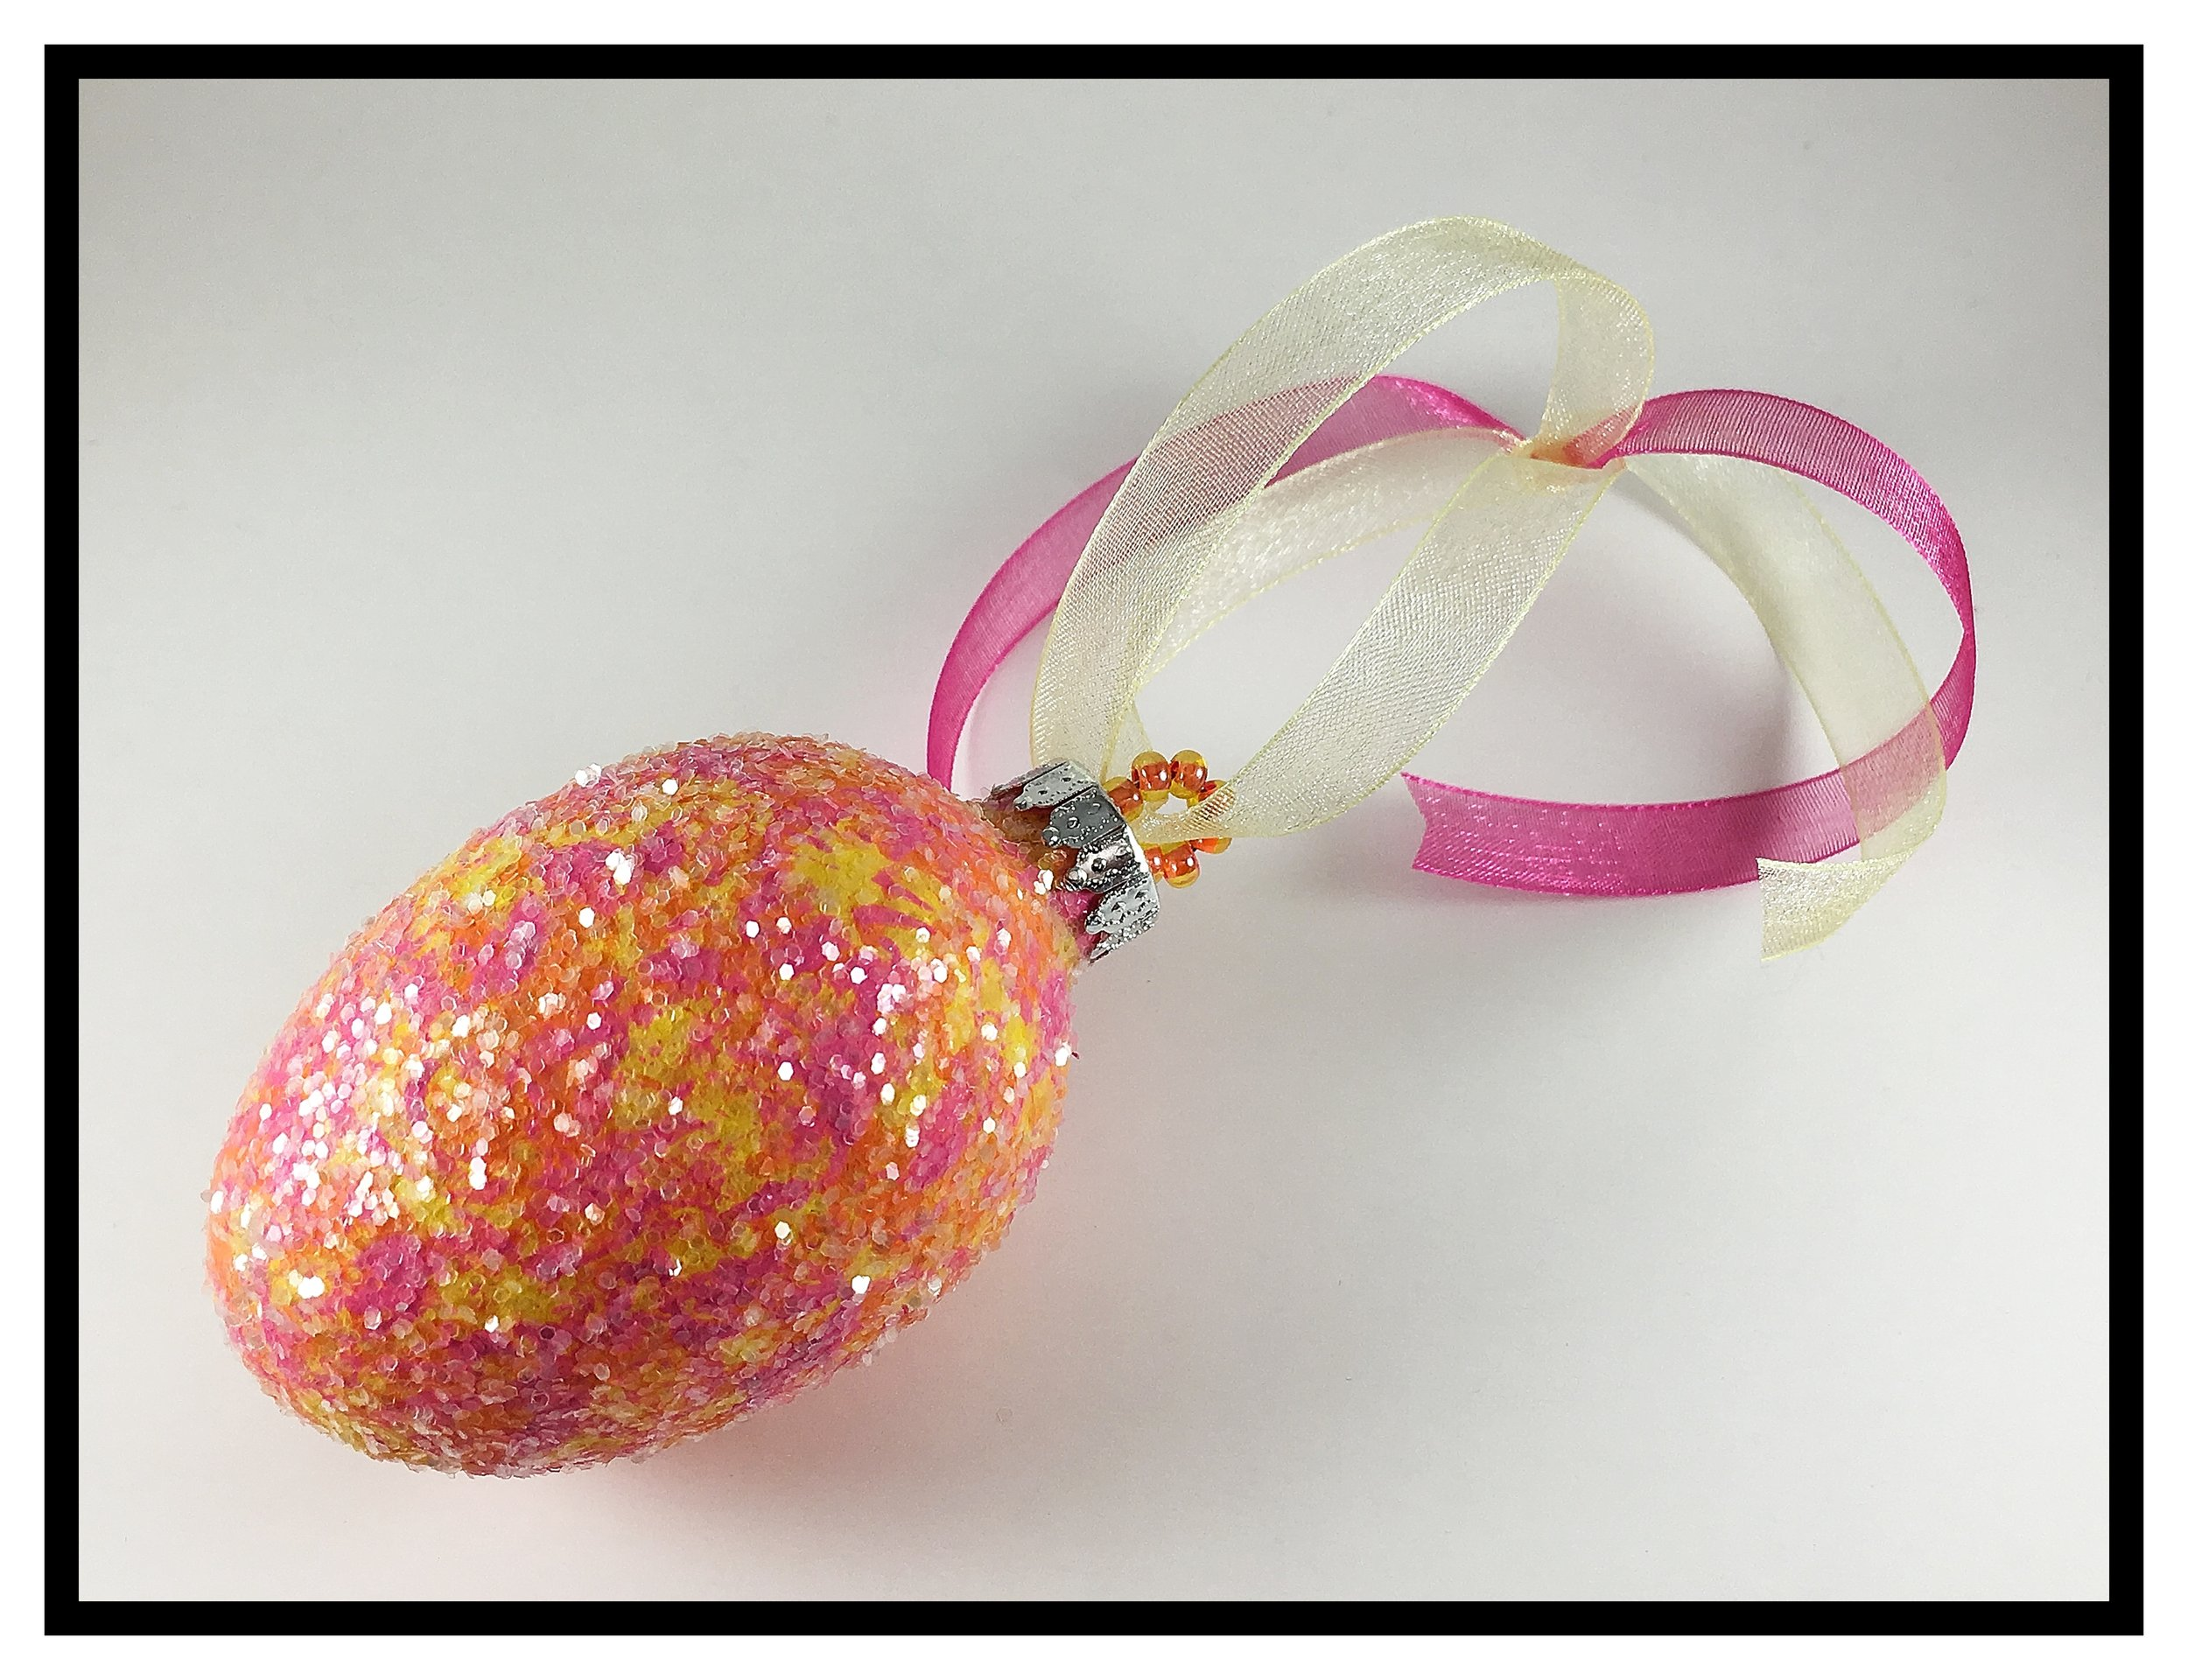 egg ornament hot pink orange yellow.jpg